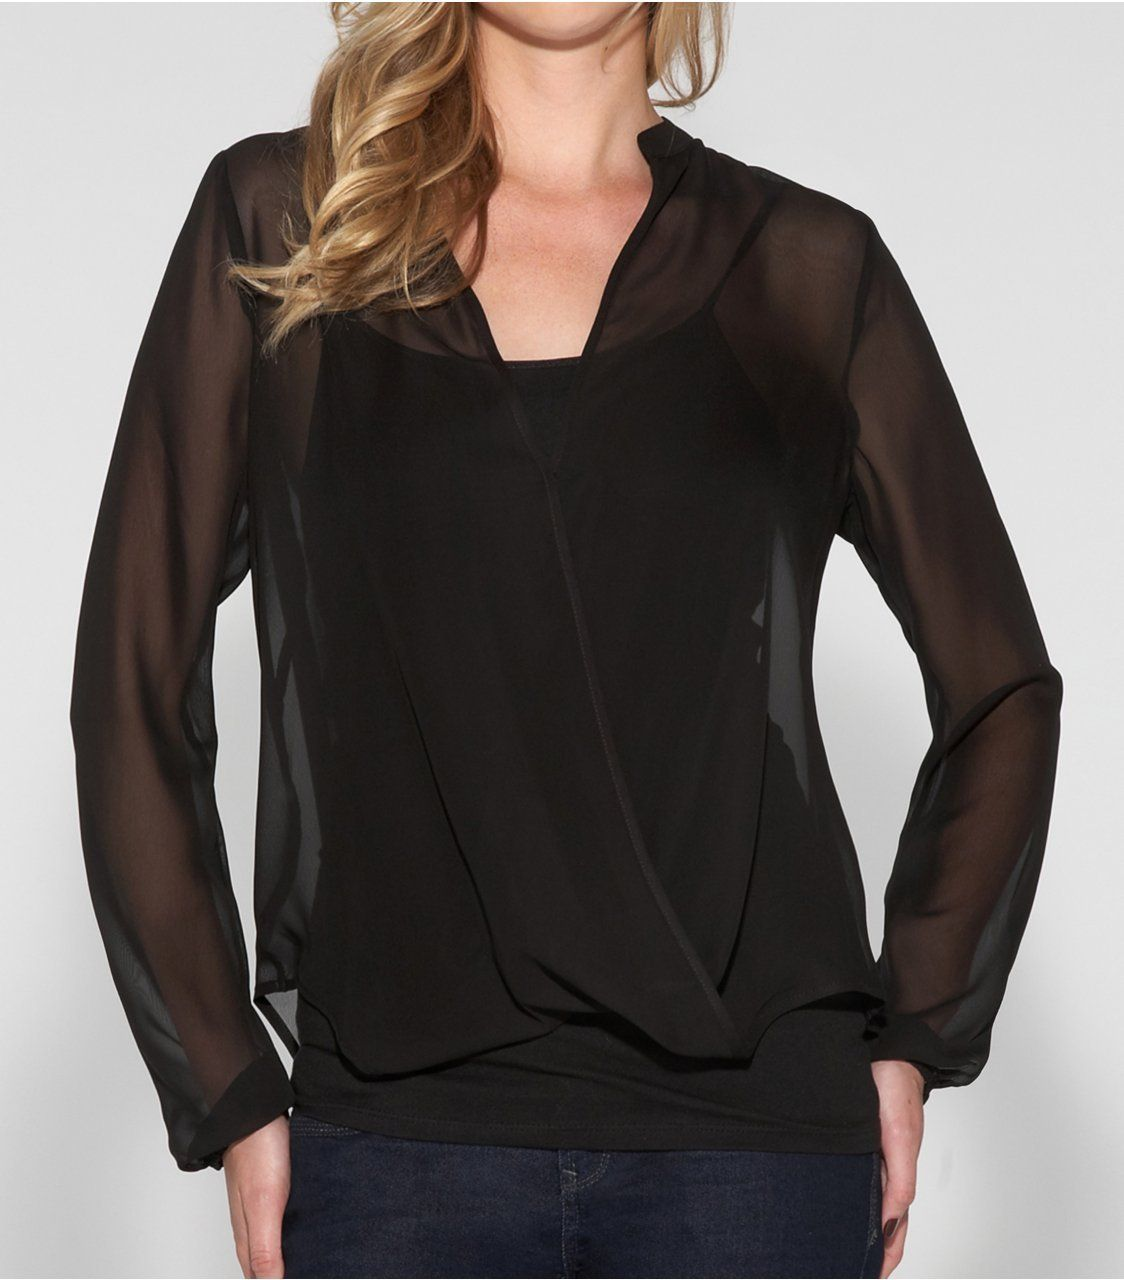 b0c3babacd7703 Amazon.com: G by GUESS Women's Haddie Top: Clothing | MY STYLE ...